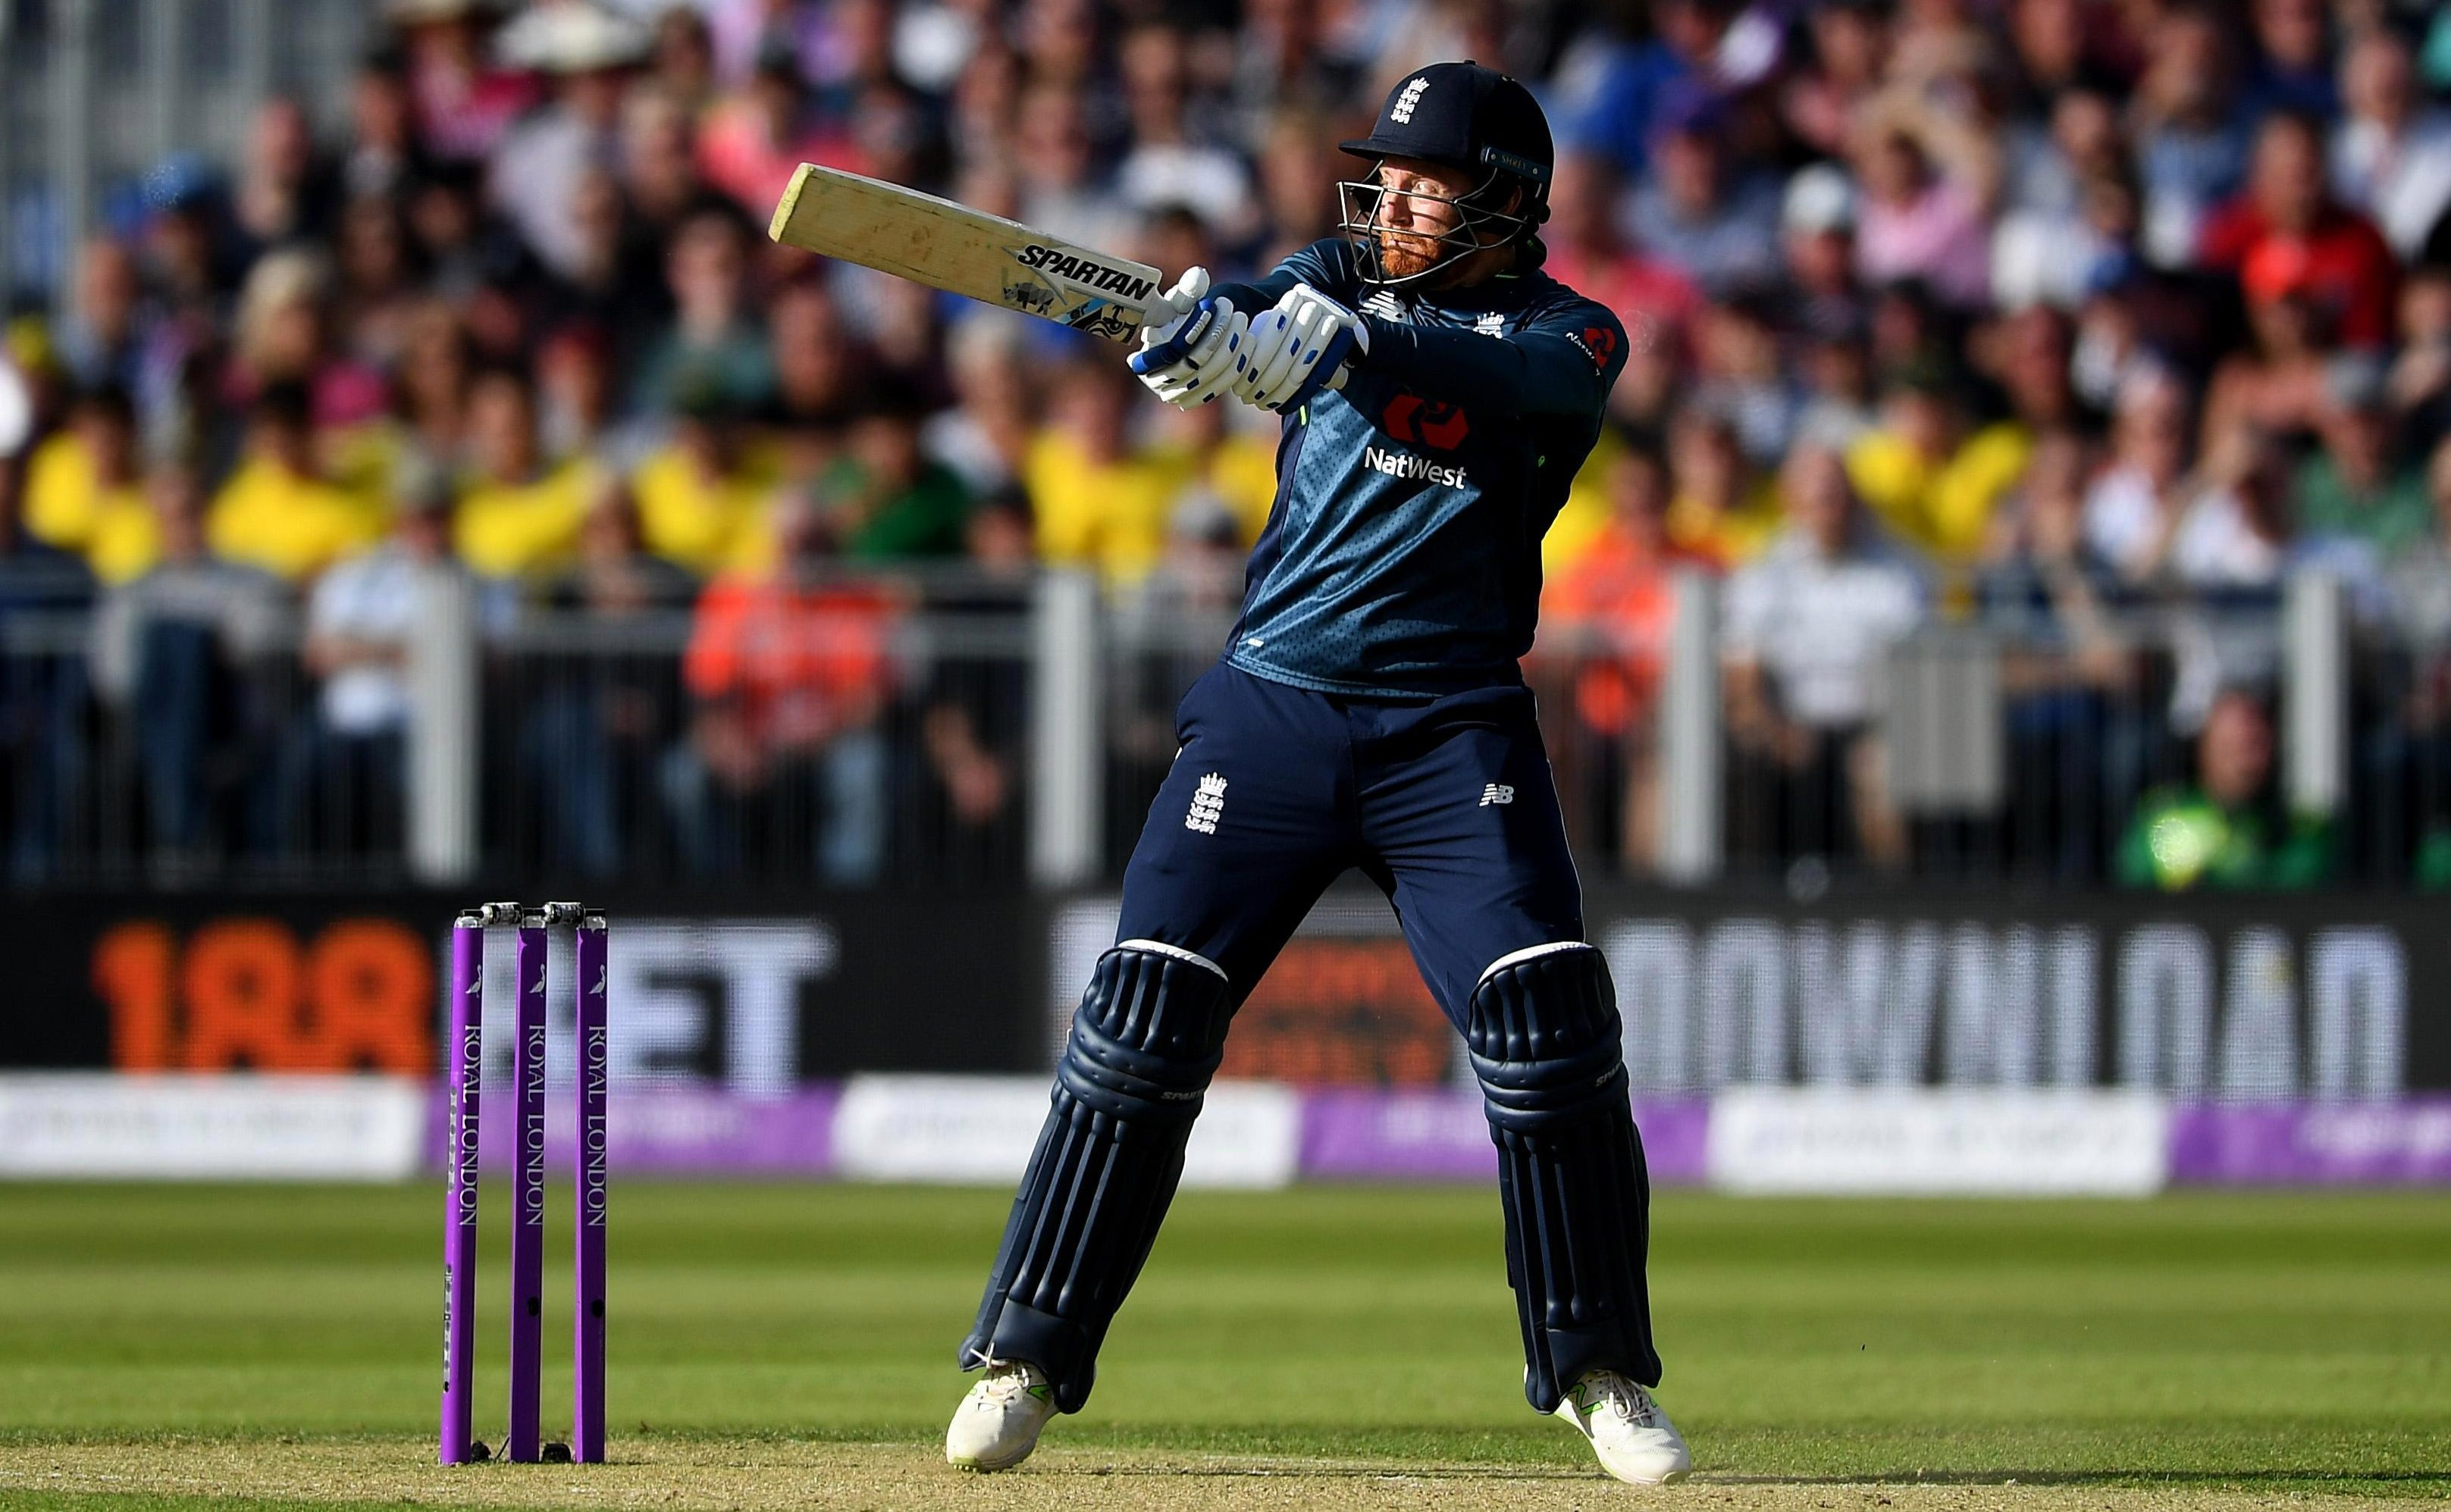 Jonny Bairstow smashed 79 from 66 balls as England made light work of their 311 target